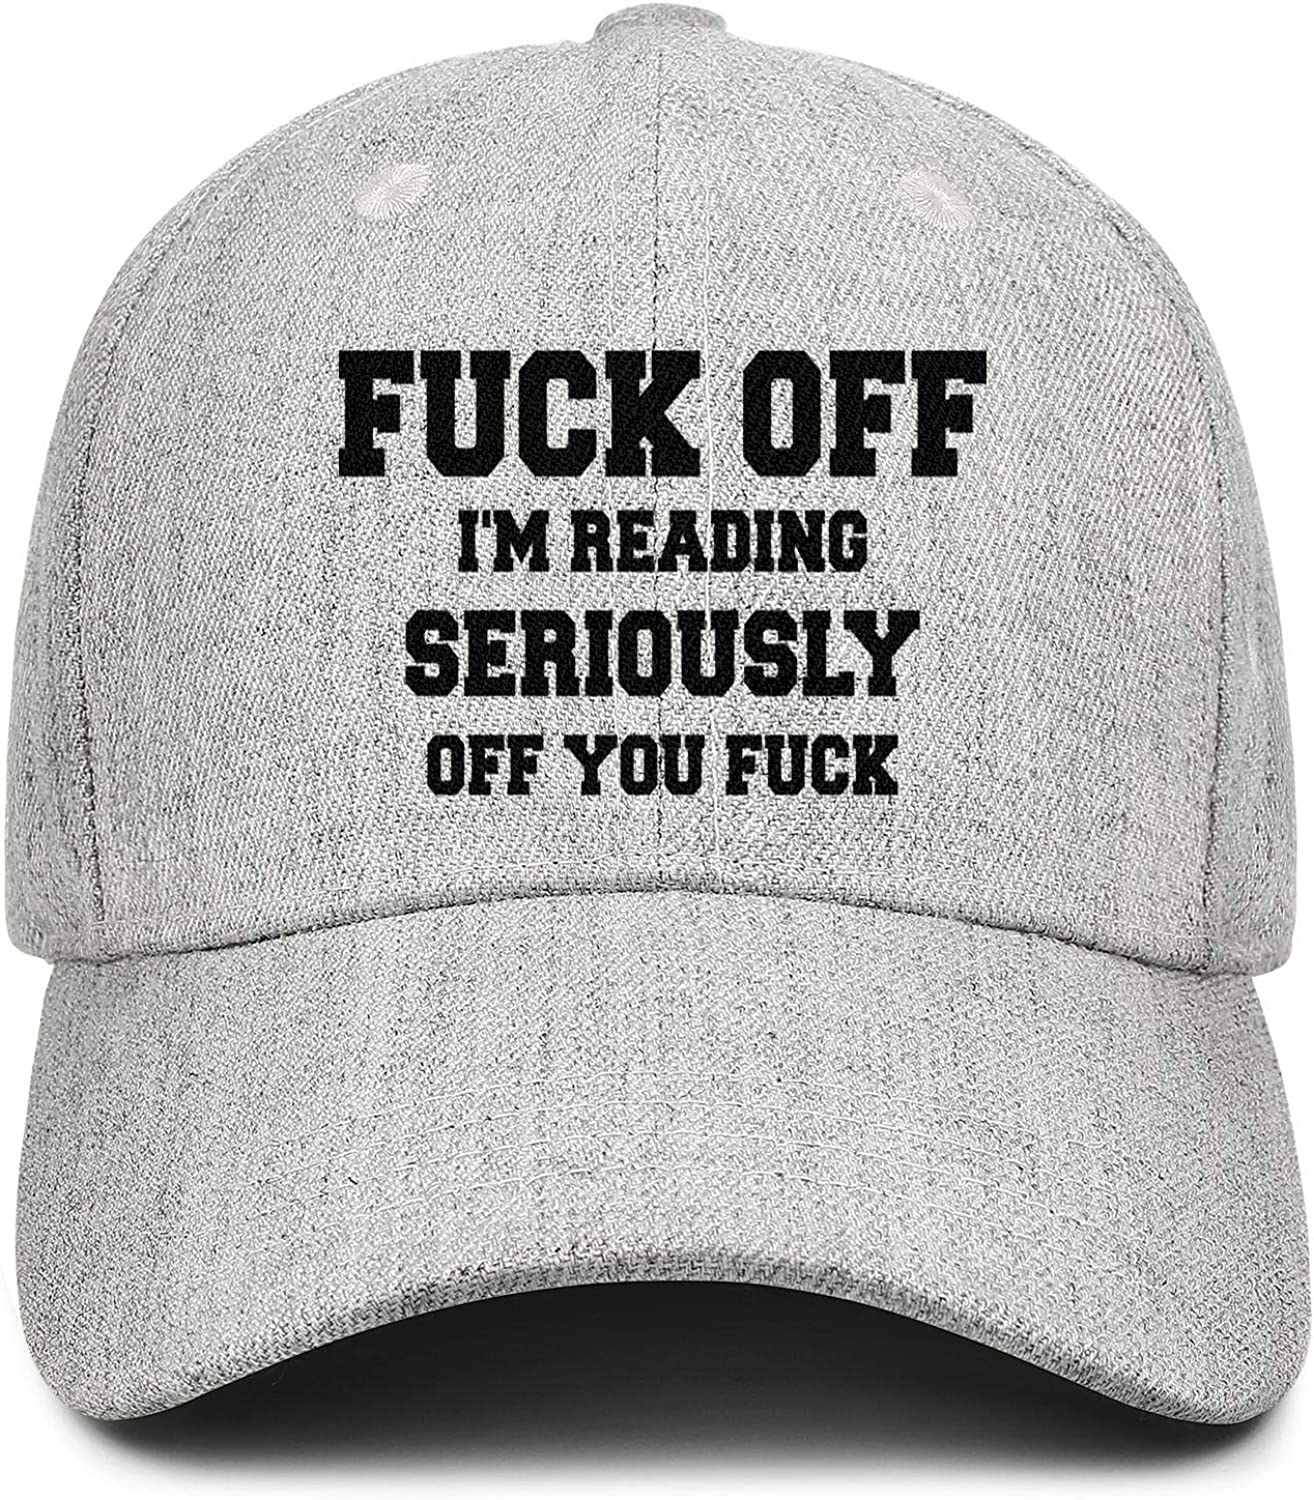 Fuck Off Im Reading Seriously Off You FUCKUnisex BallWool Cap Adjustable SnapbackSun Hat